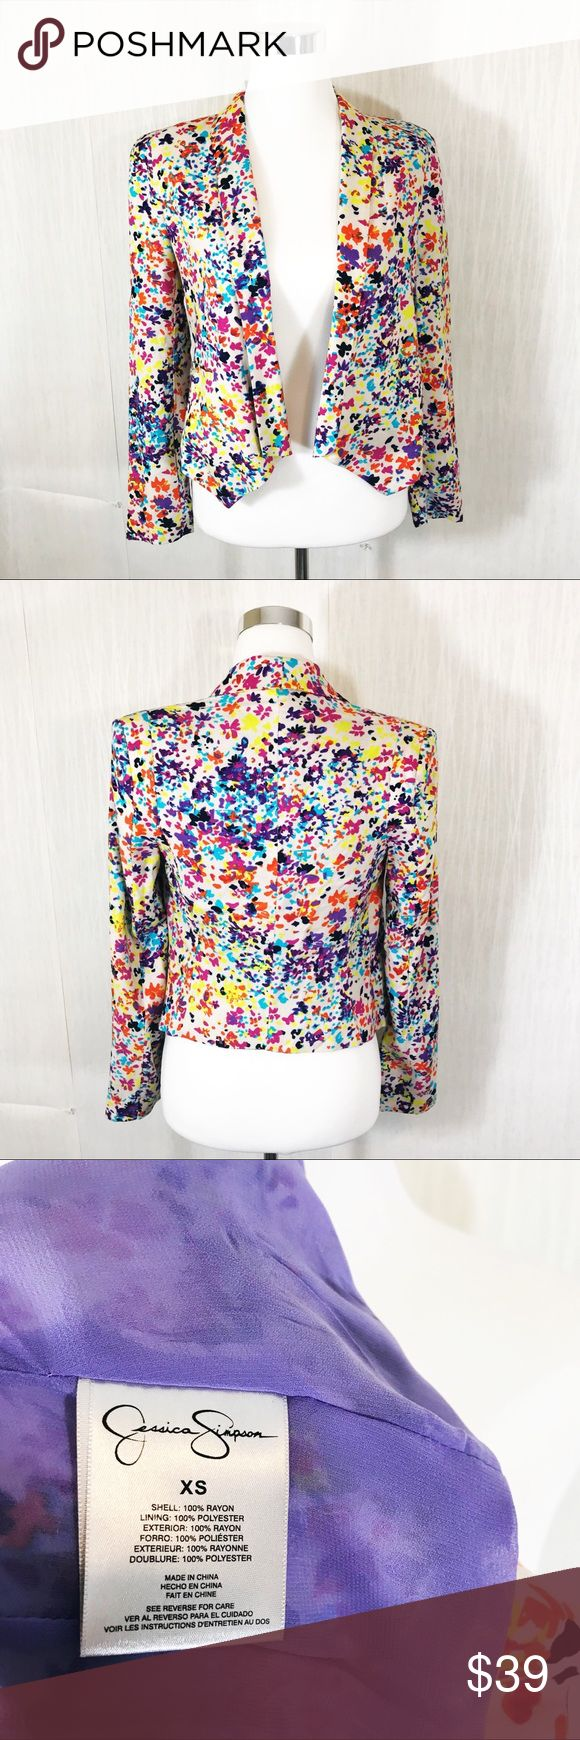 Jessica Simpson | Multi Color Floral Blazer Women's size XS | New without tags | Light weight and super versatile! Looks great with jeans and heels Jessica Simpson Jackets & Coats Blazers